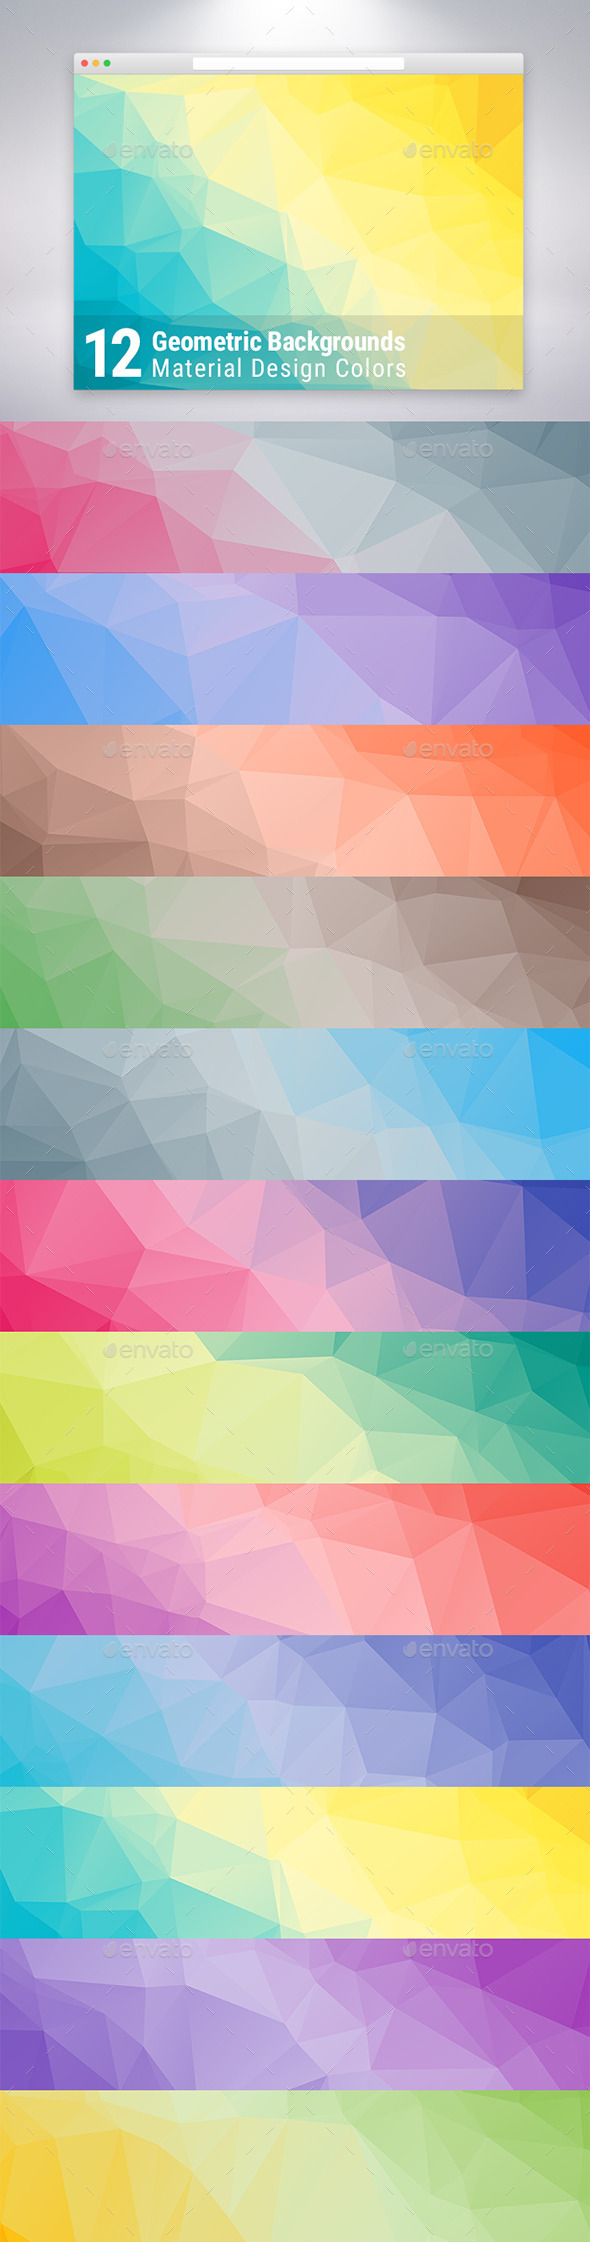 GraphicRiver Material Design Geometric Backgrounds x12 10245186